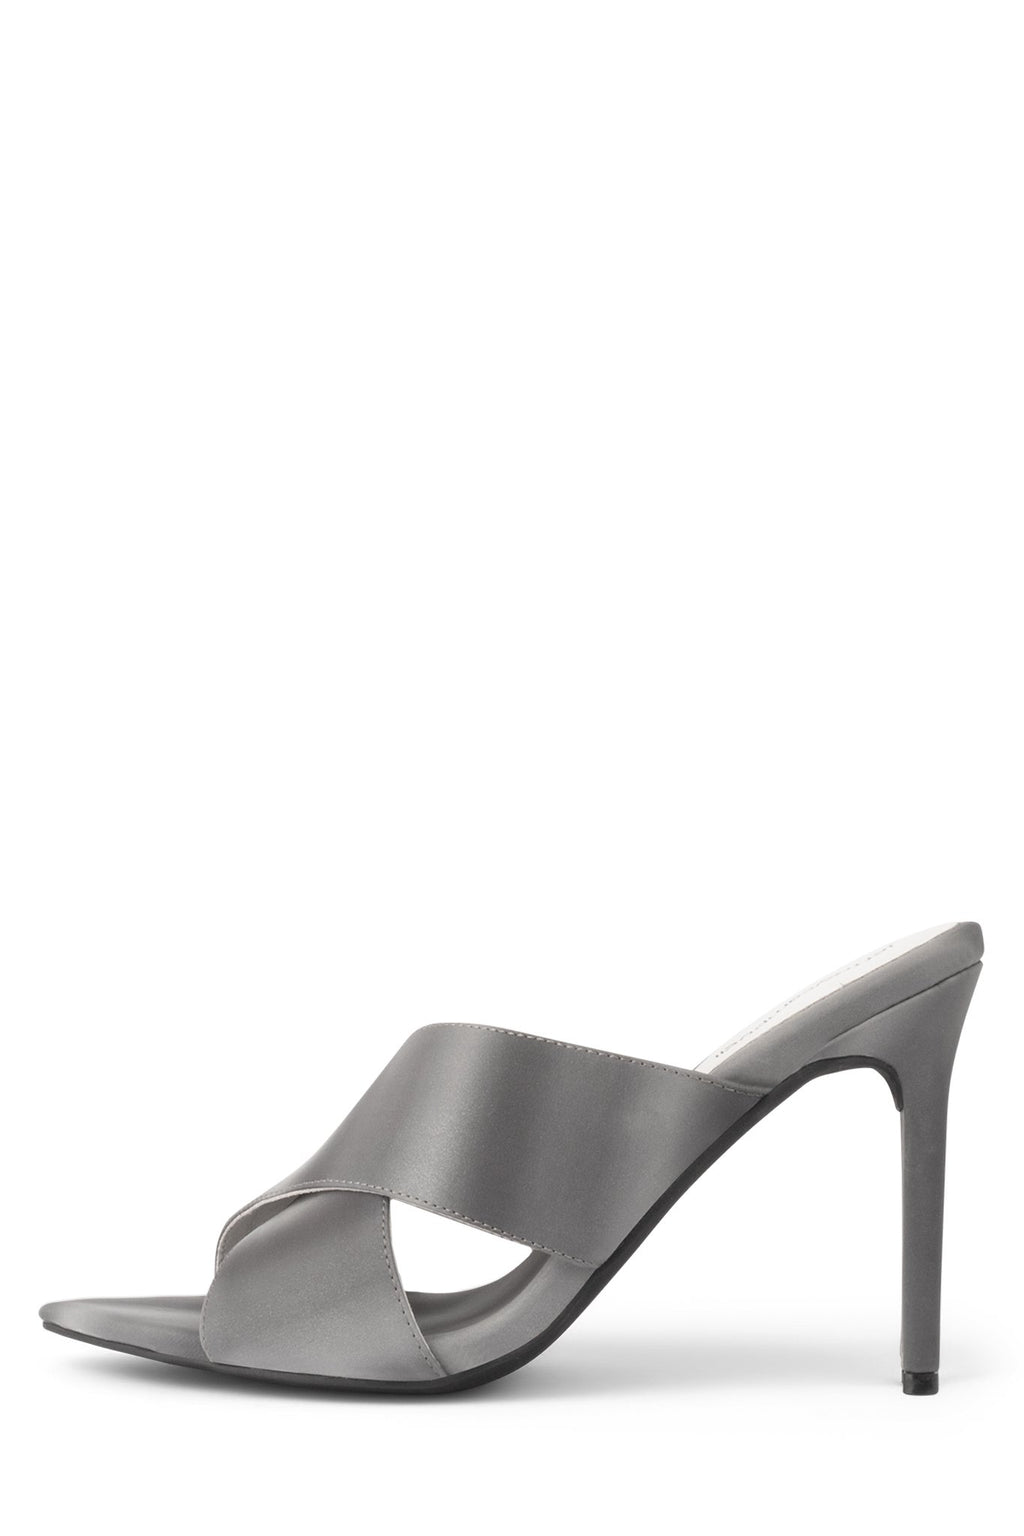 RATED-G Heeled Sandal RB Reflective 6